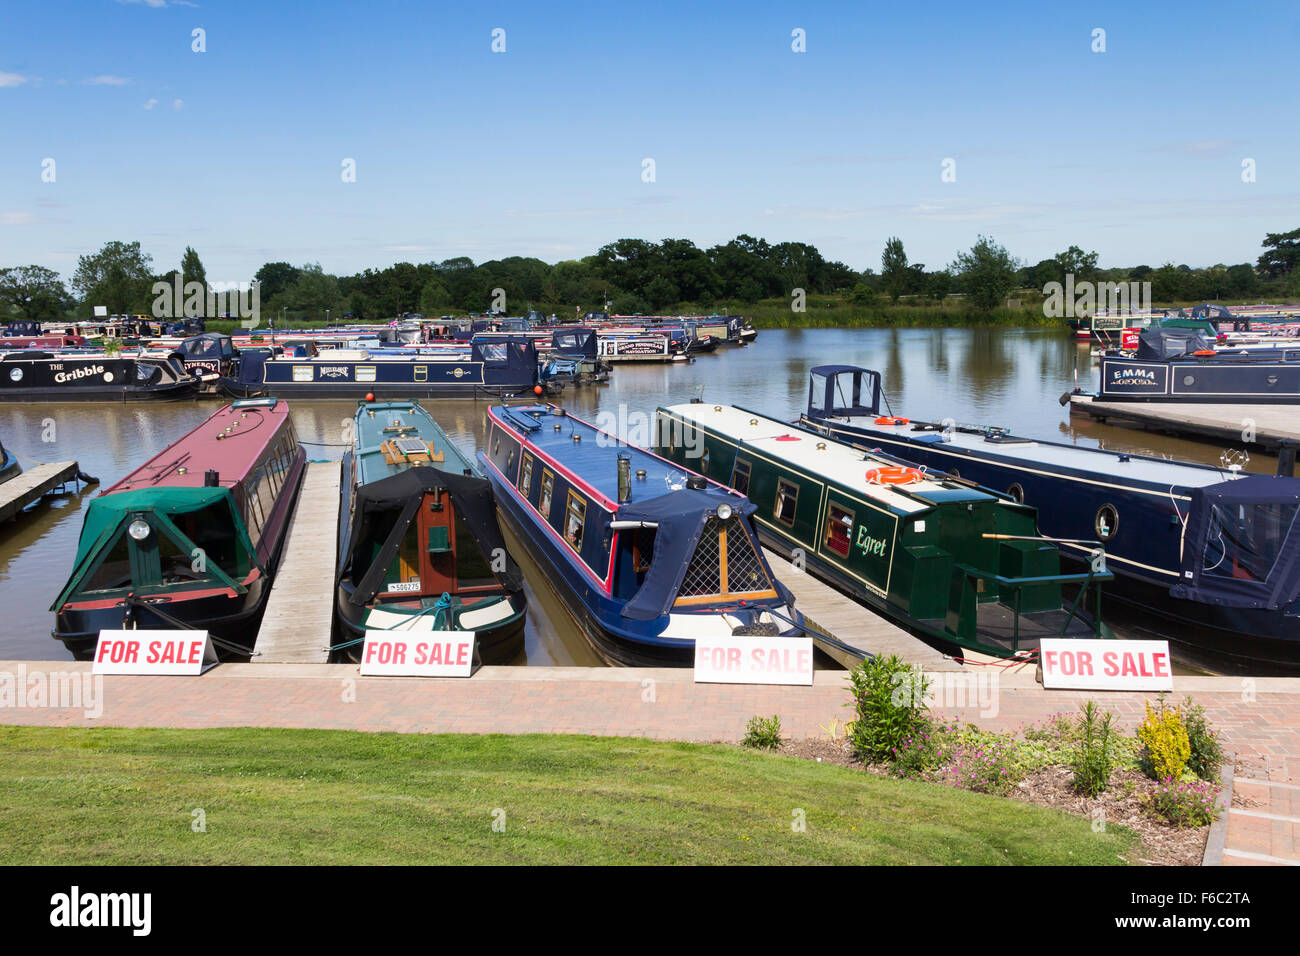 Narrowboats for sale at Church Minshull Aqueduct Marina, Cheshire. - Stock Image